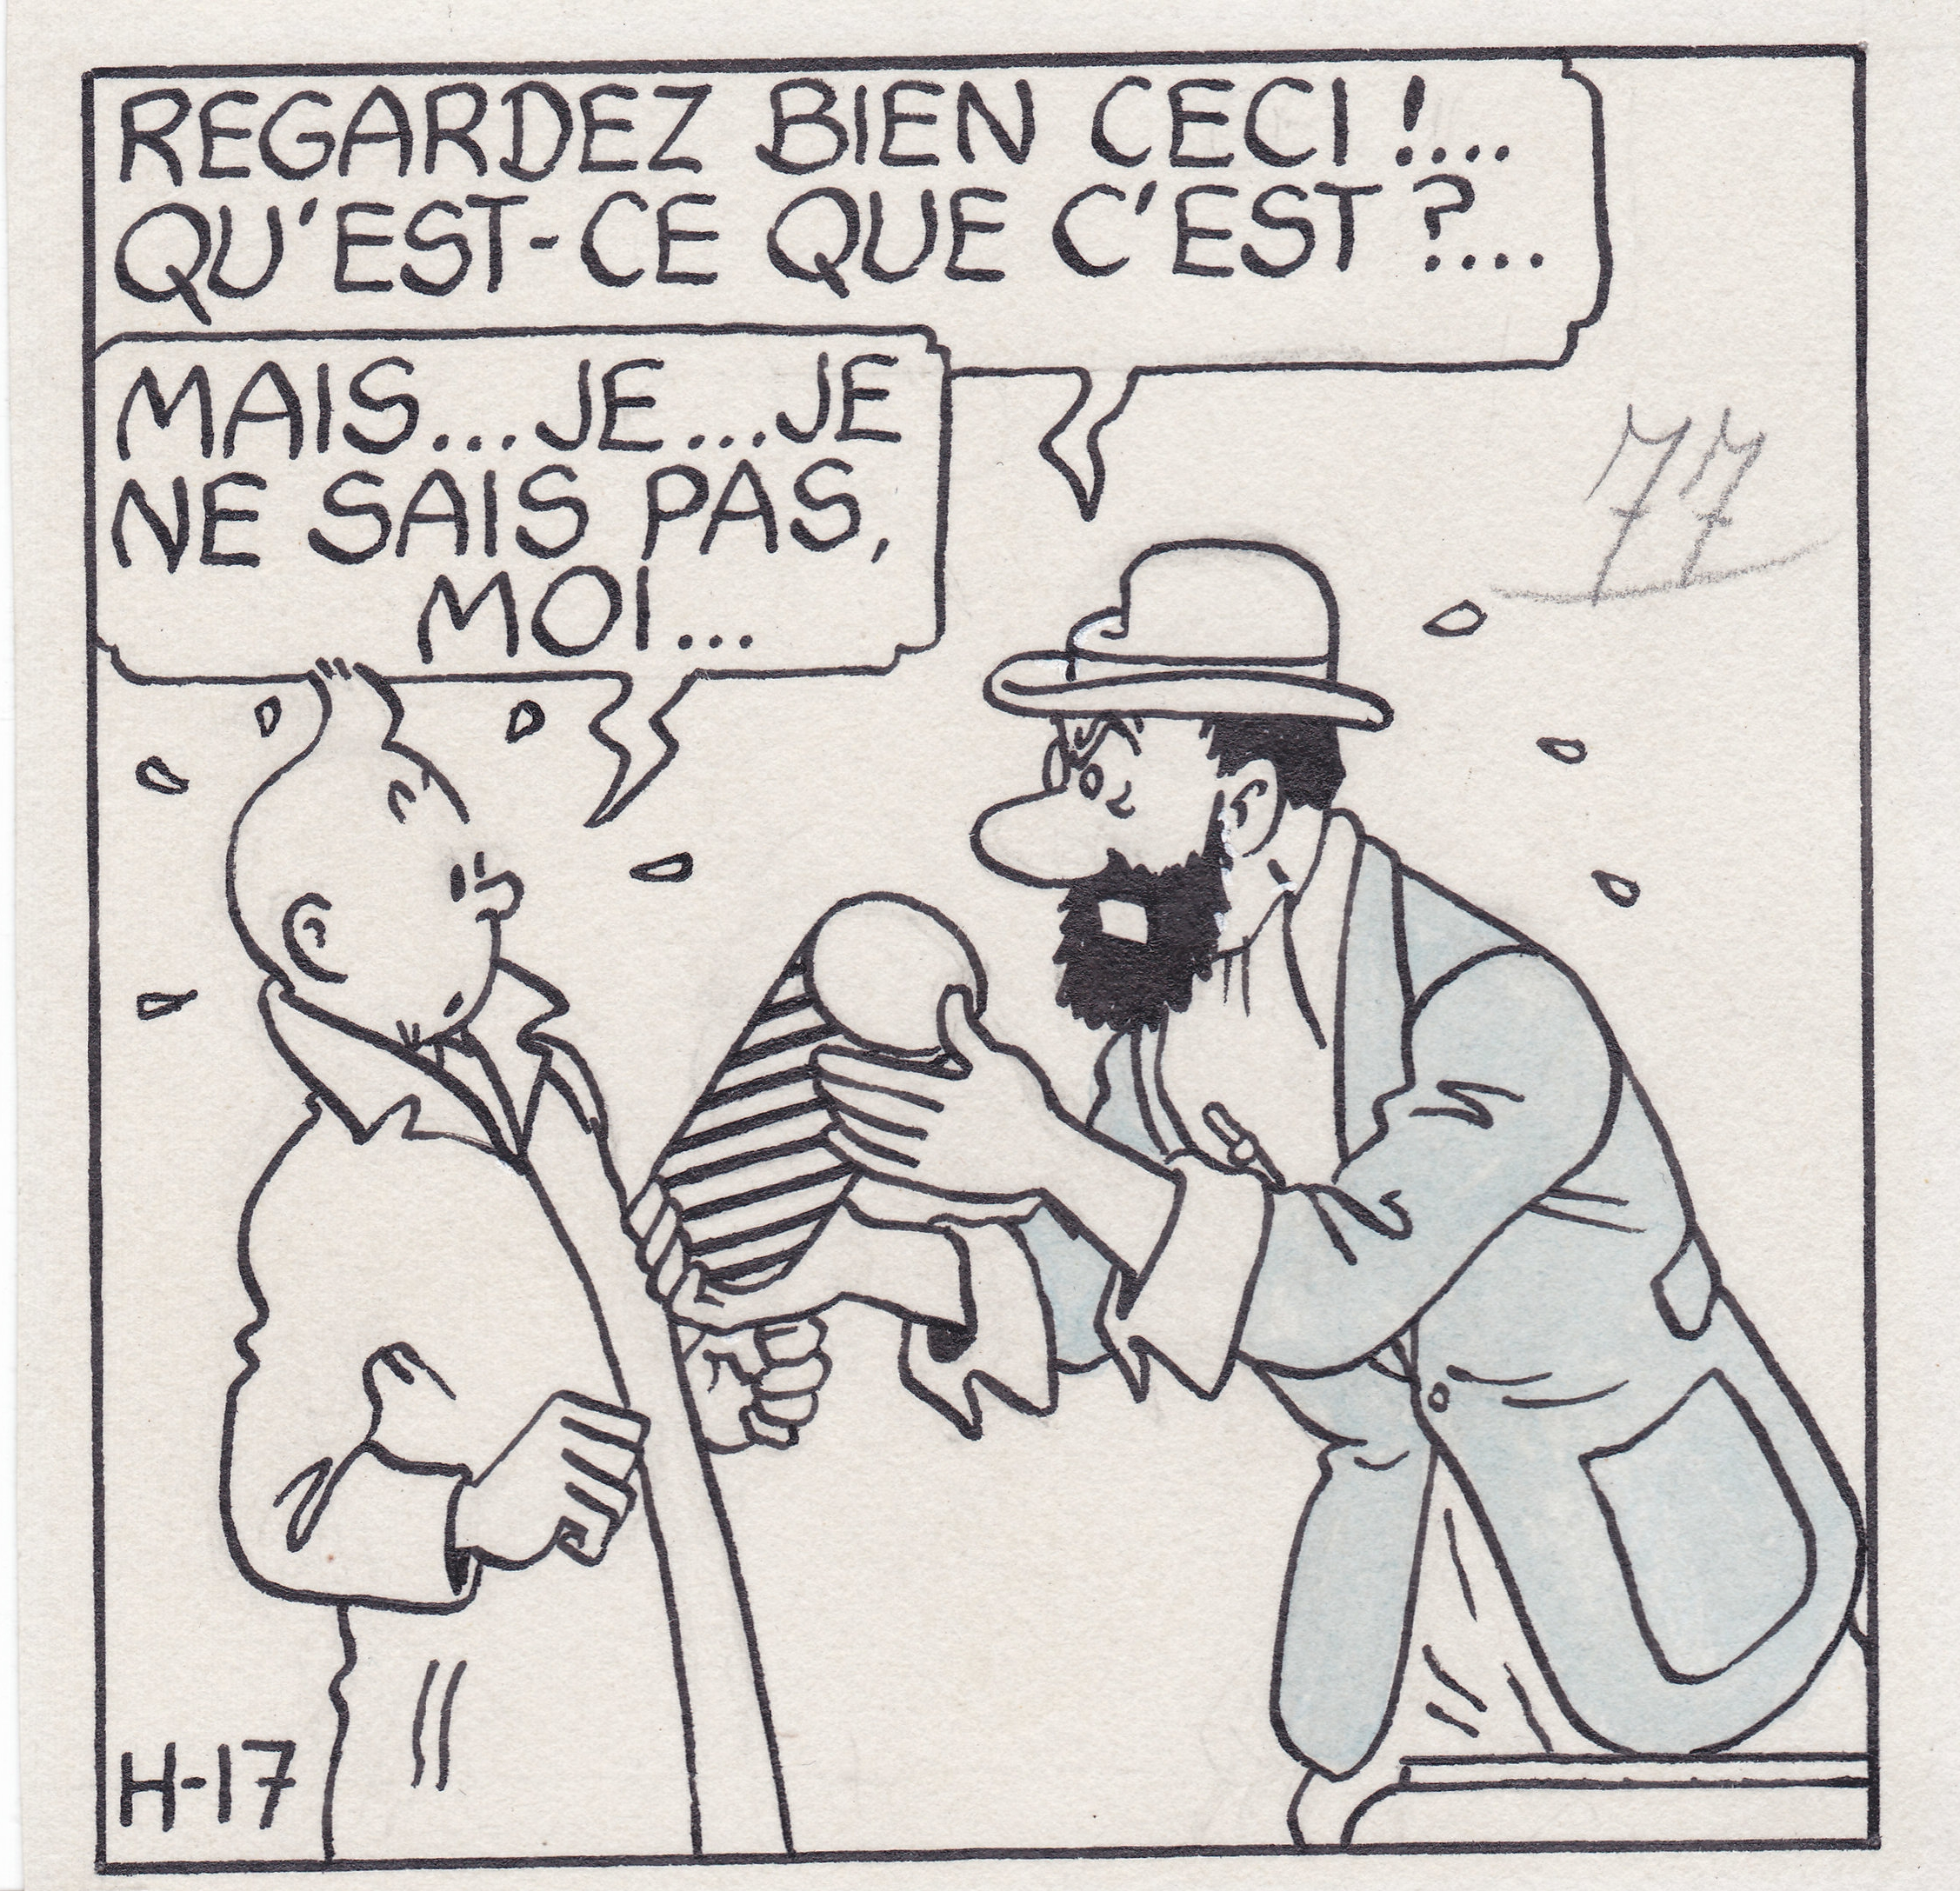 Franco-Belgian comic by cartoonist Hergé.